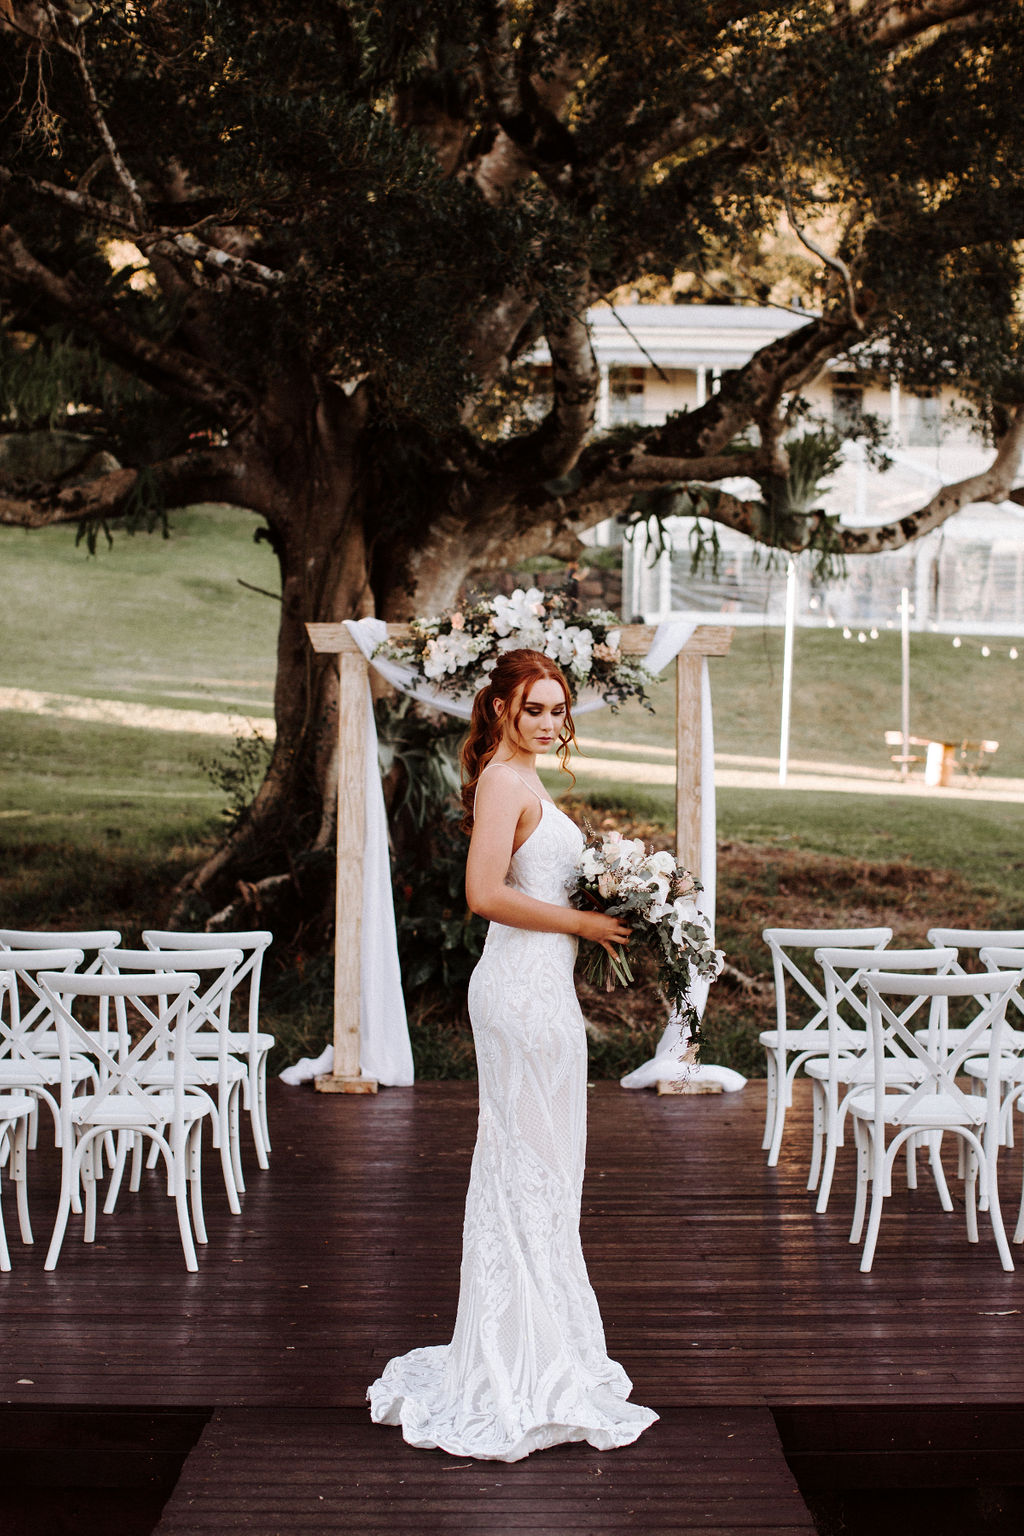 kayla temple photography weddings glass house mountains sunshine coast florals stationery outdoor marquee reception